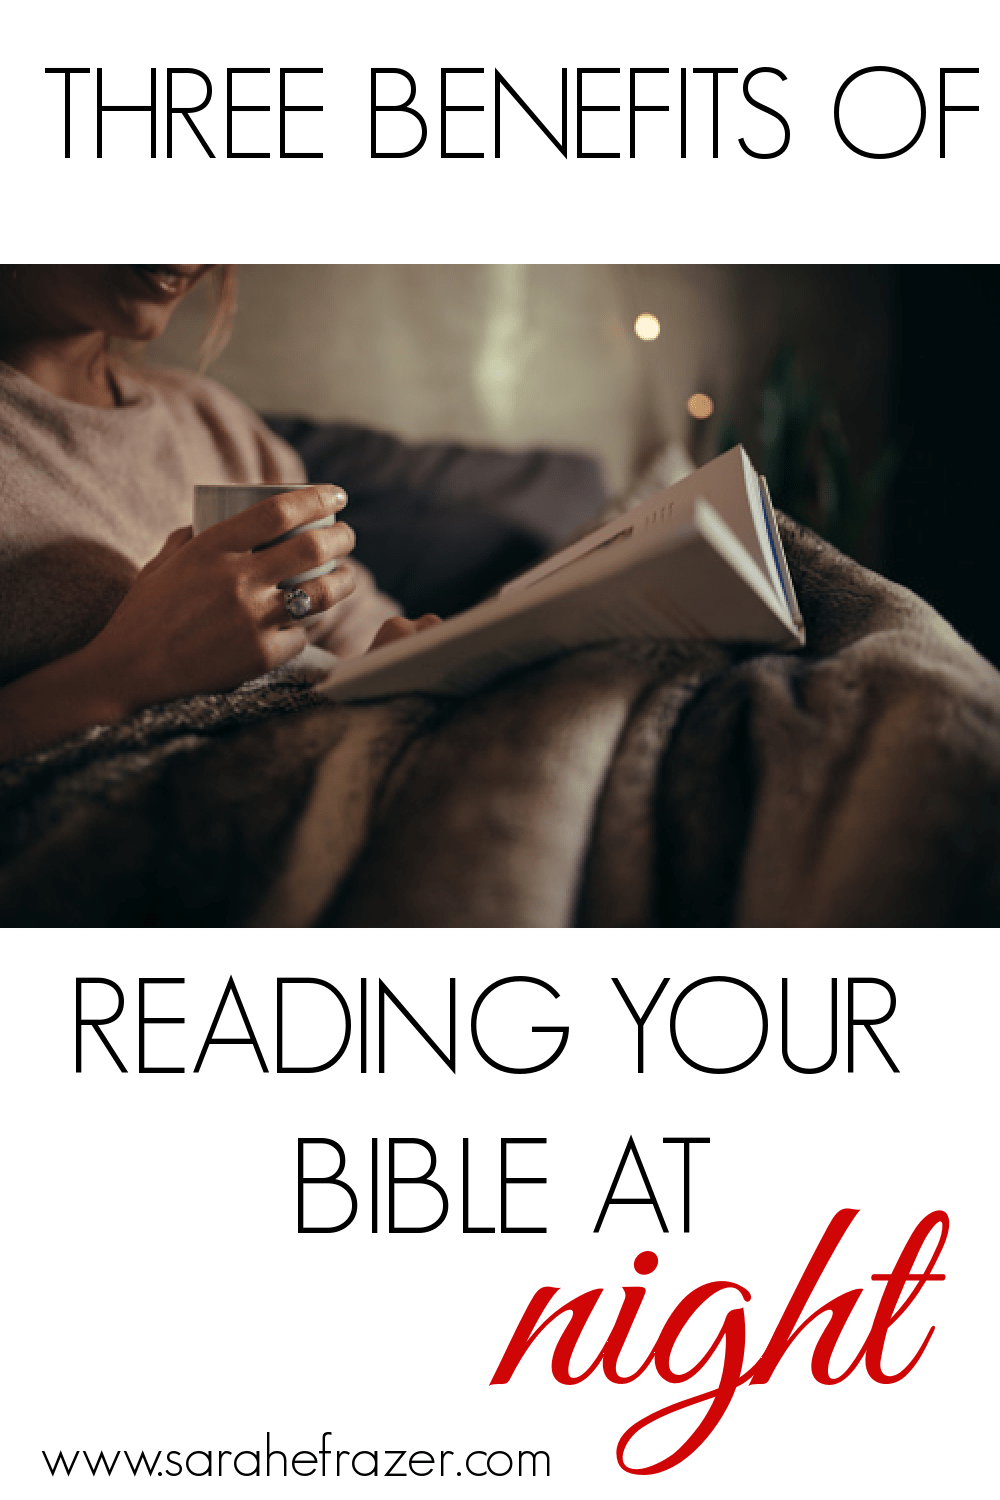 When Should I Read My Bible?